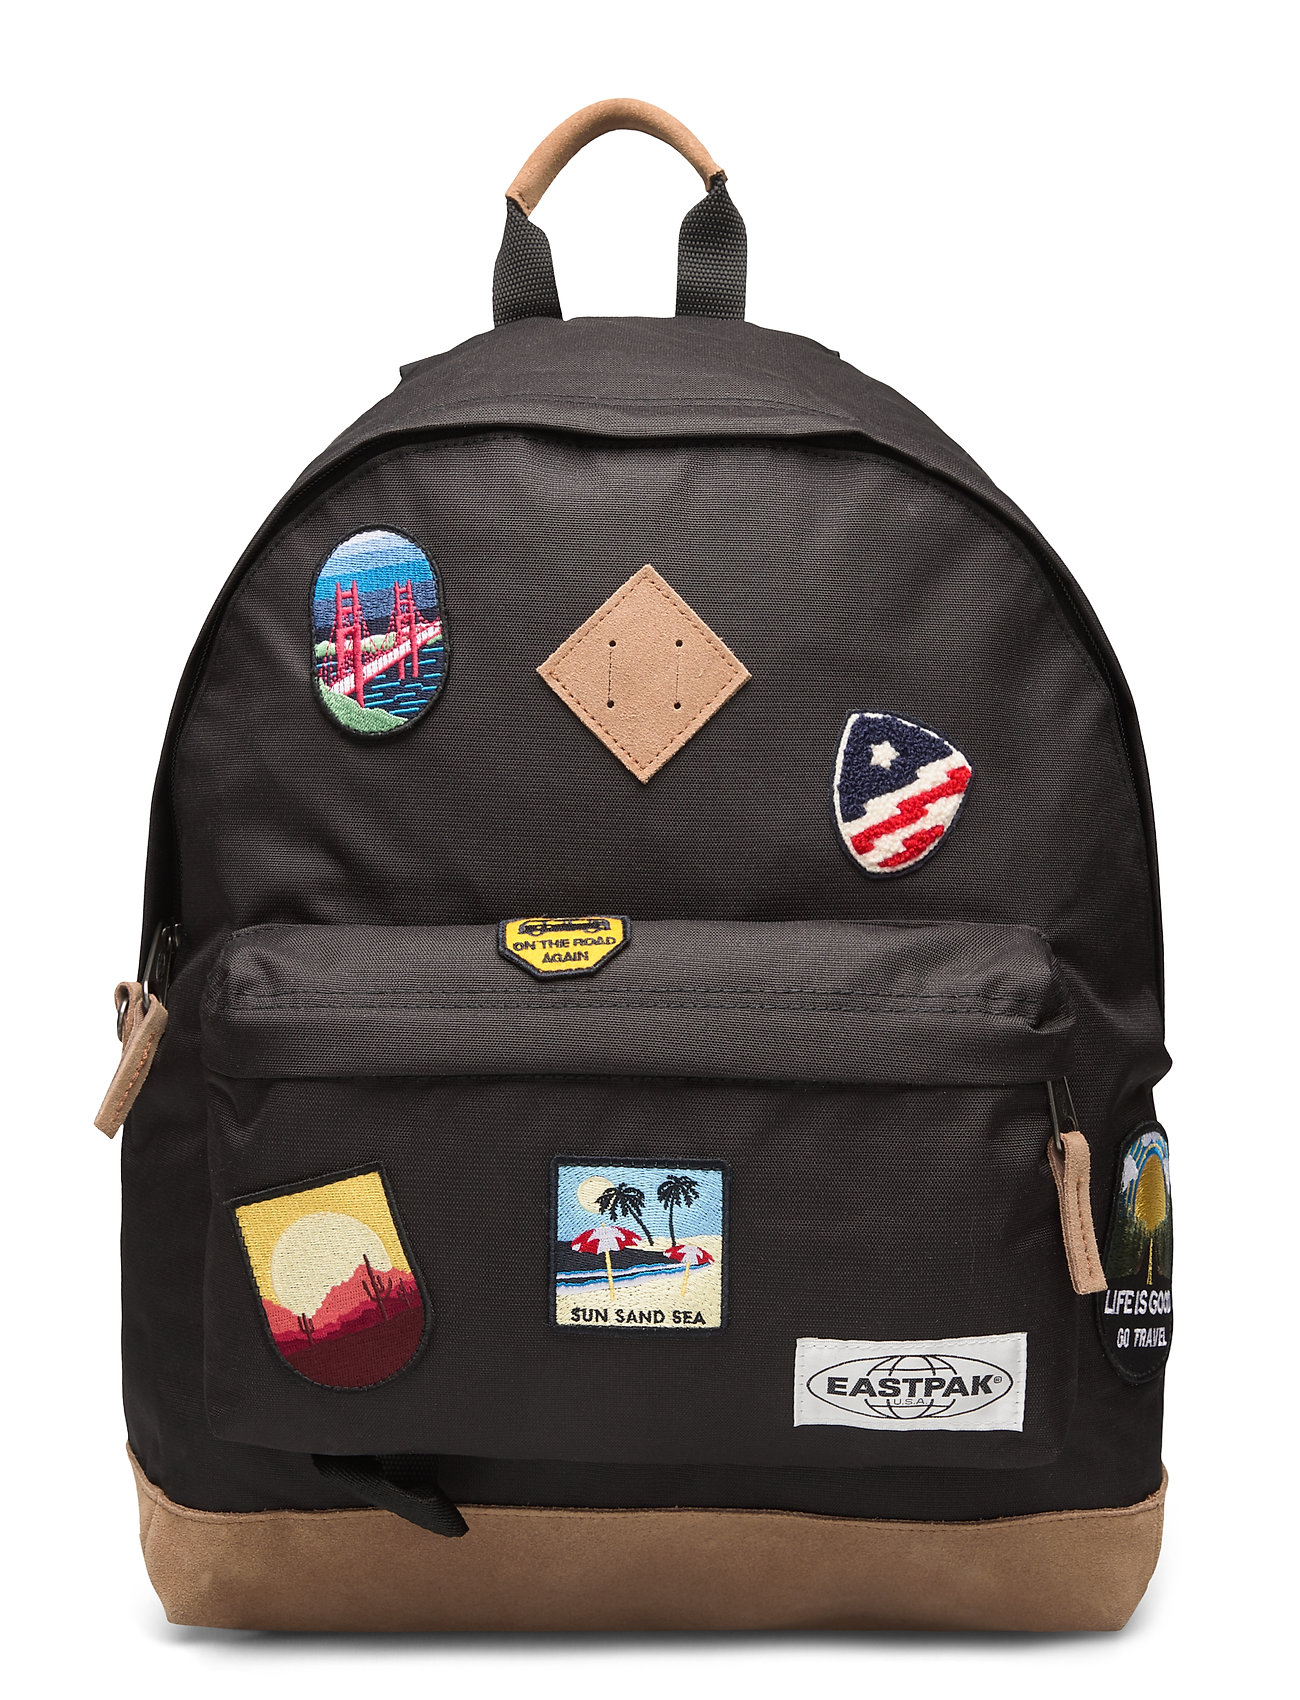 Eastpak Wyoming Into Patch Black 40 Large Selection Of Outlet Styles Booztlet Com